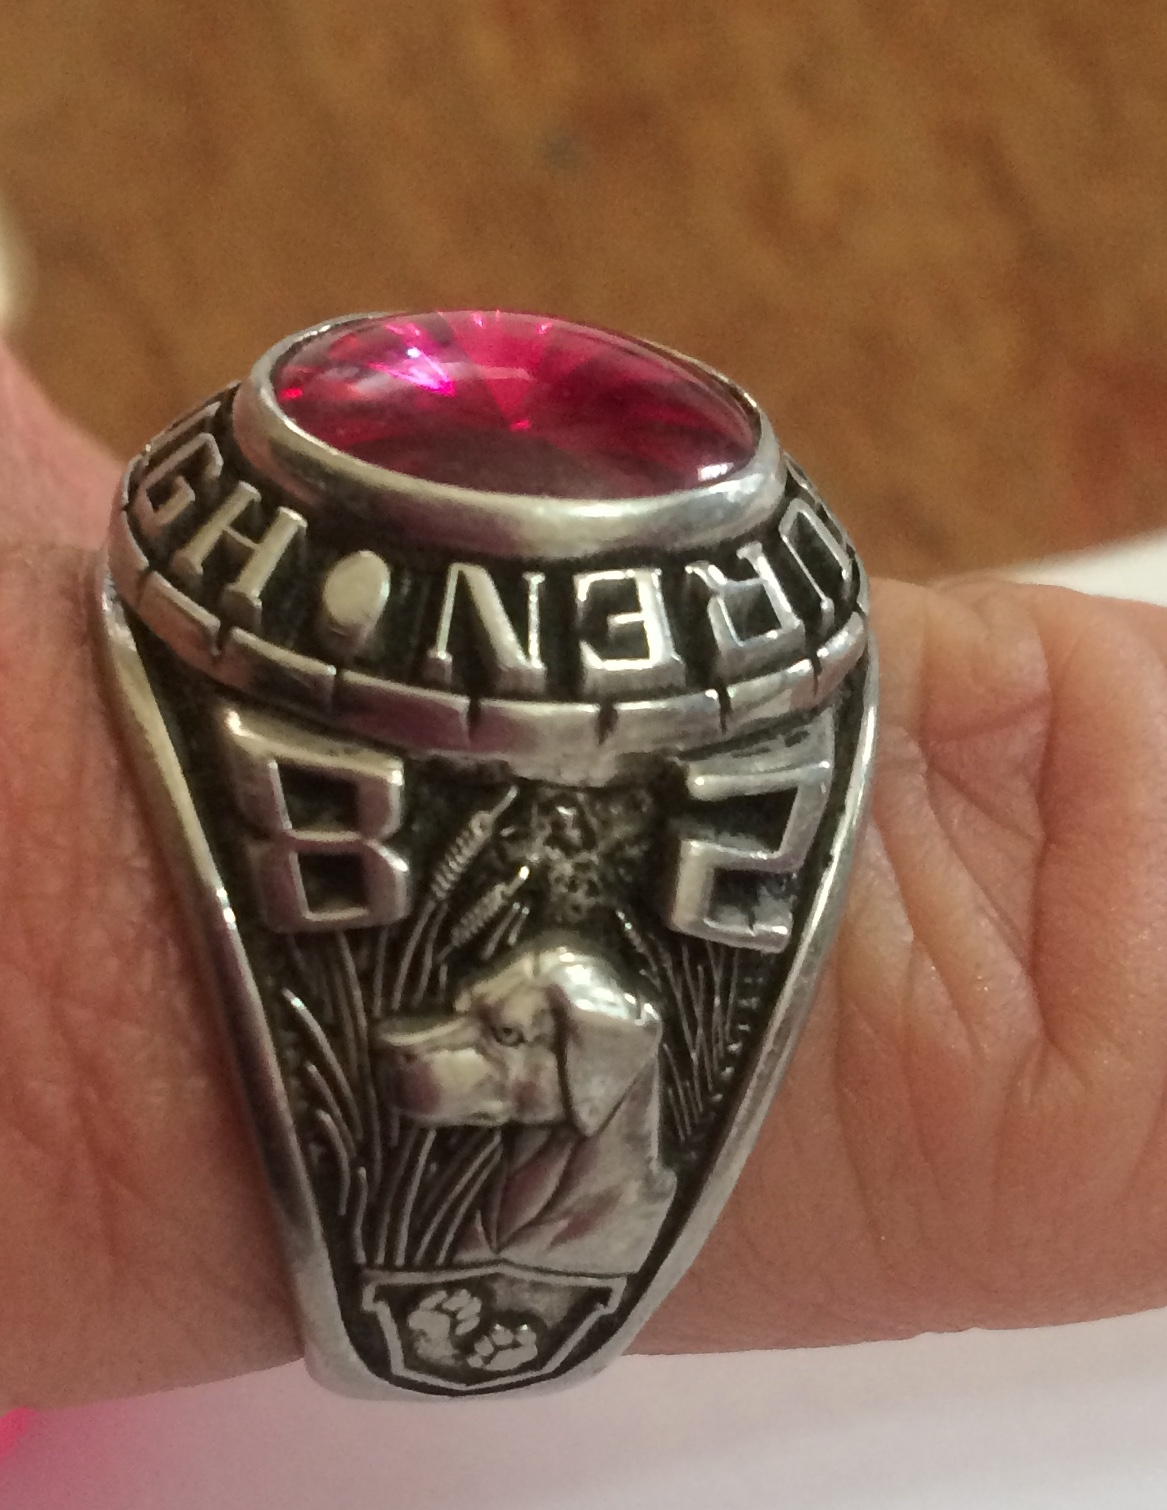 Van Buren 1982 Class Ring Found Lodged In Motor, Owner Sought | Fort